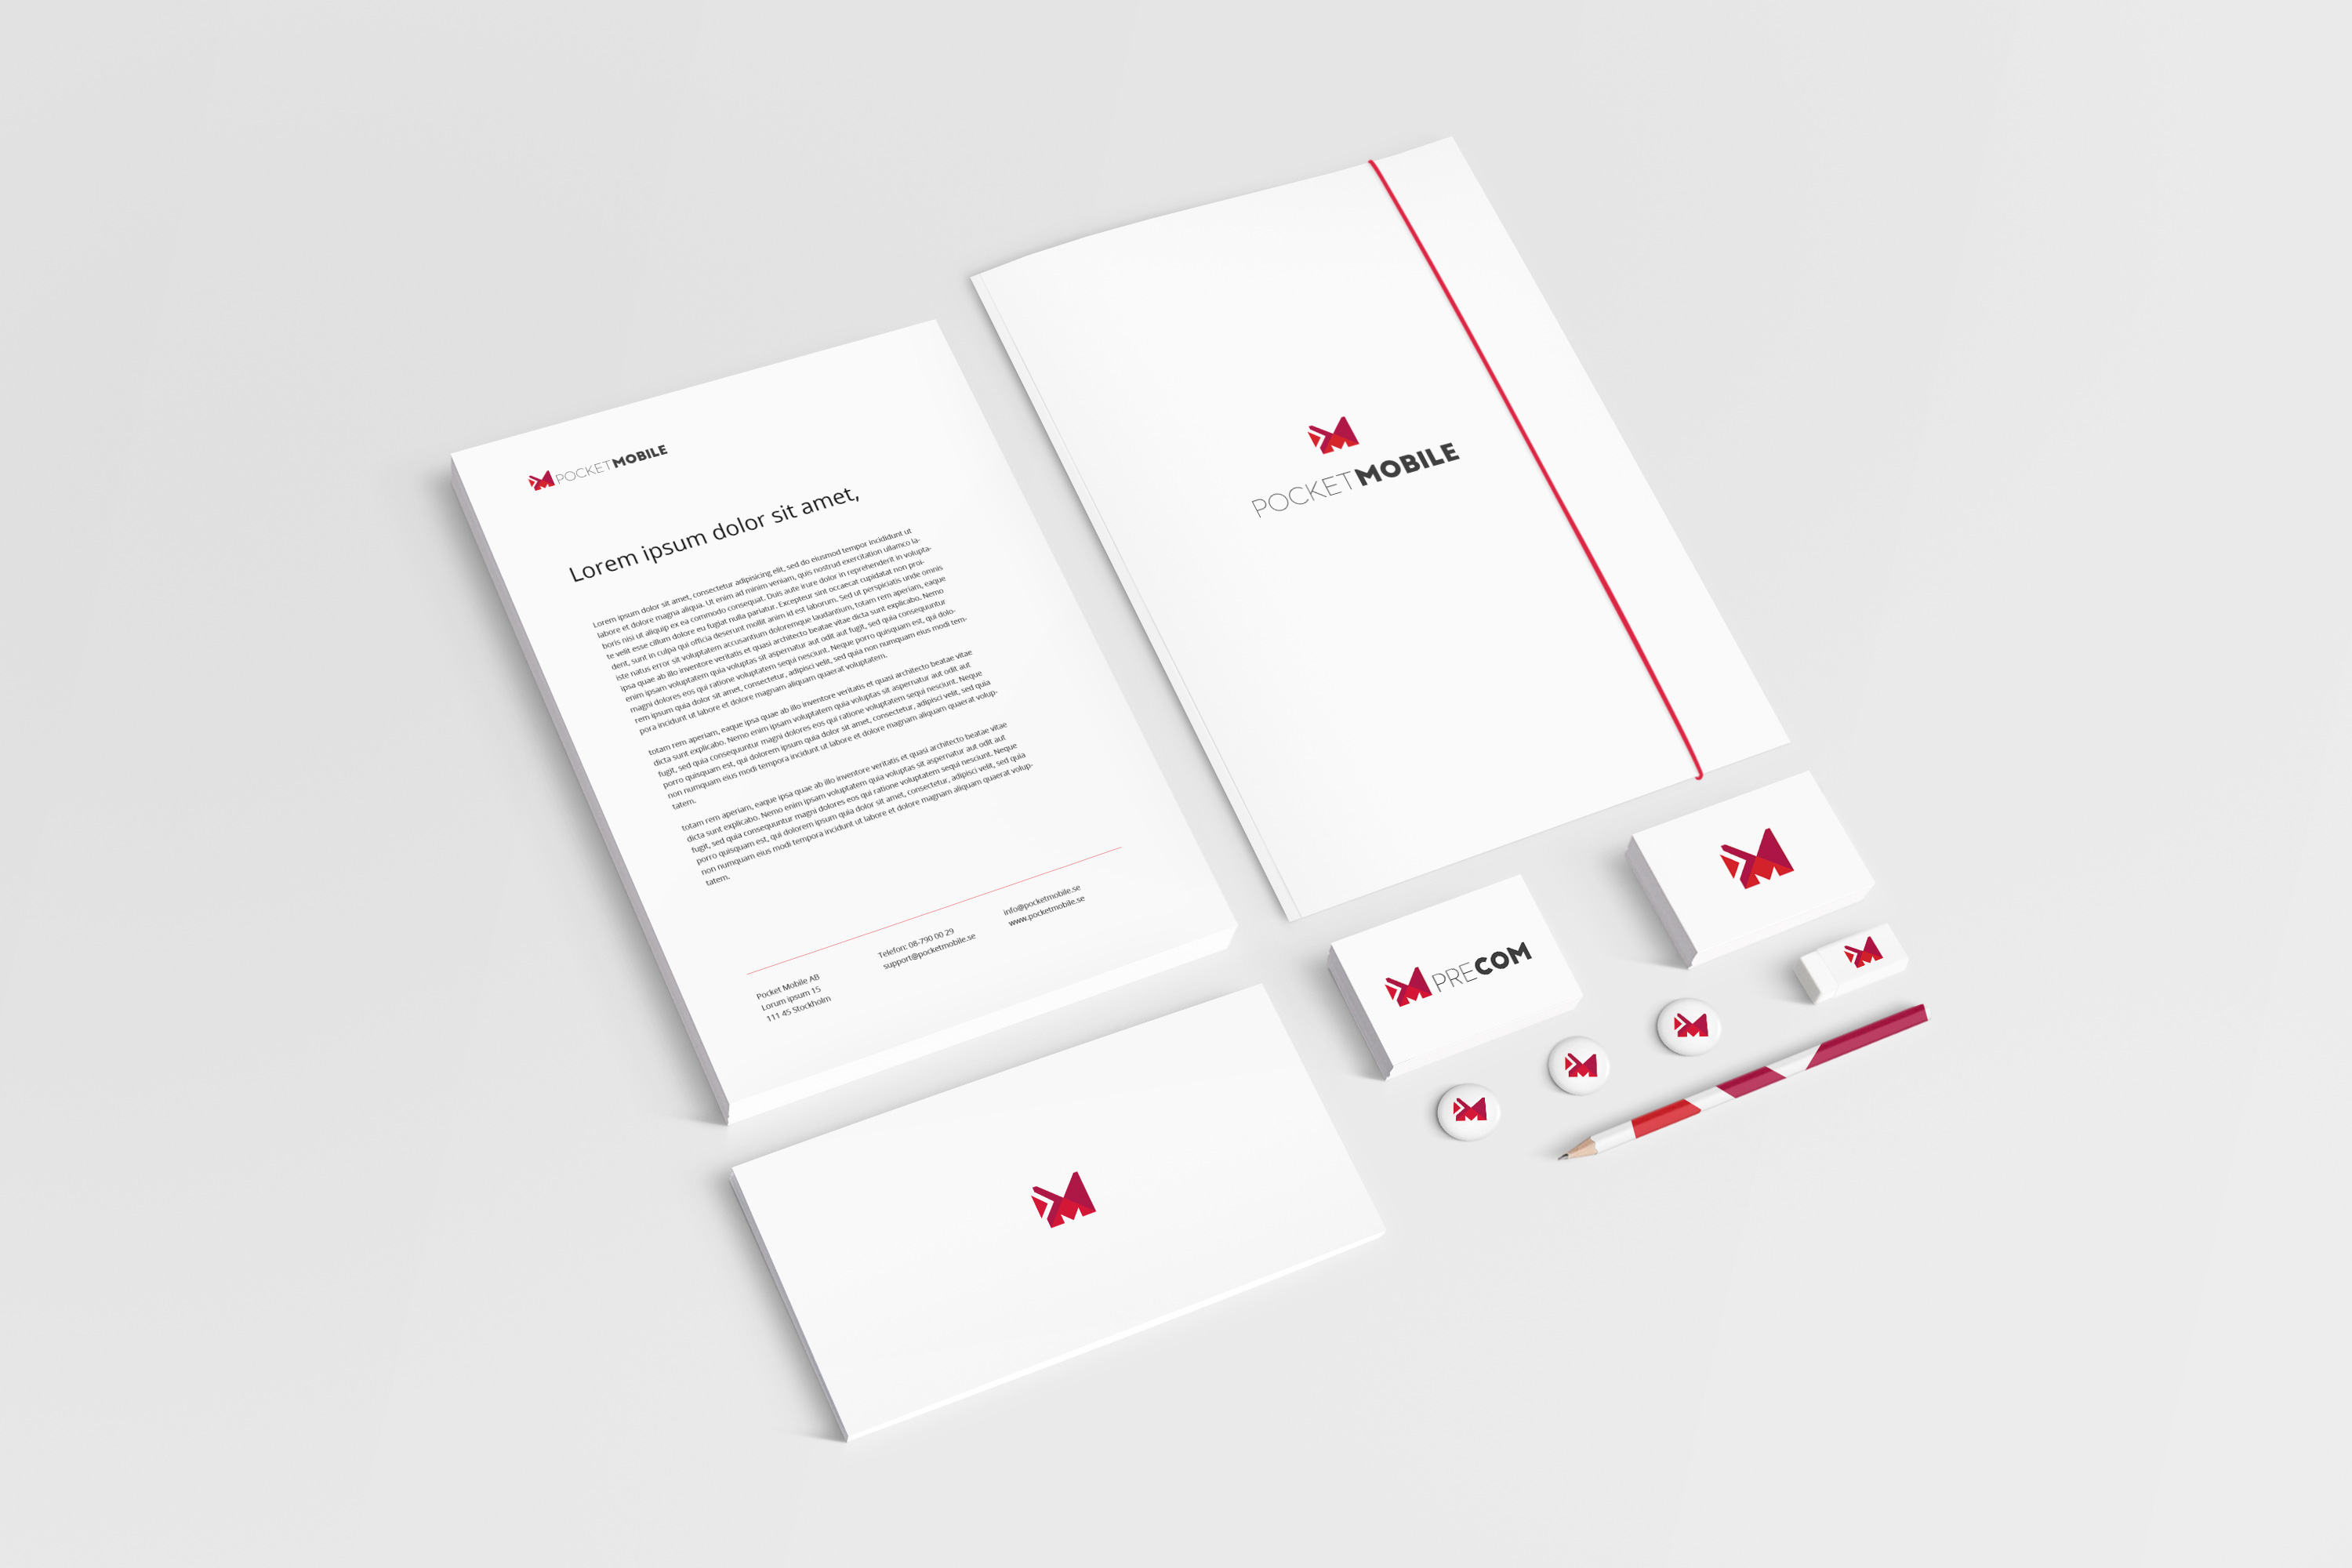 Mockup-Pocket_mobile5